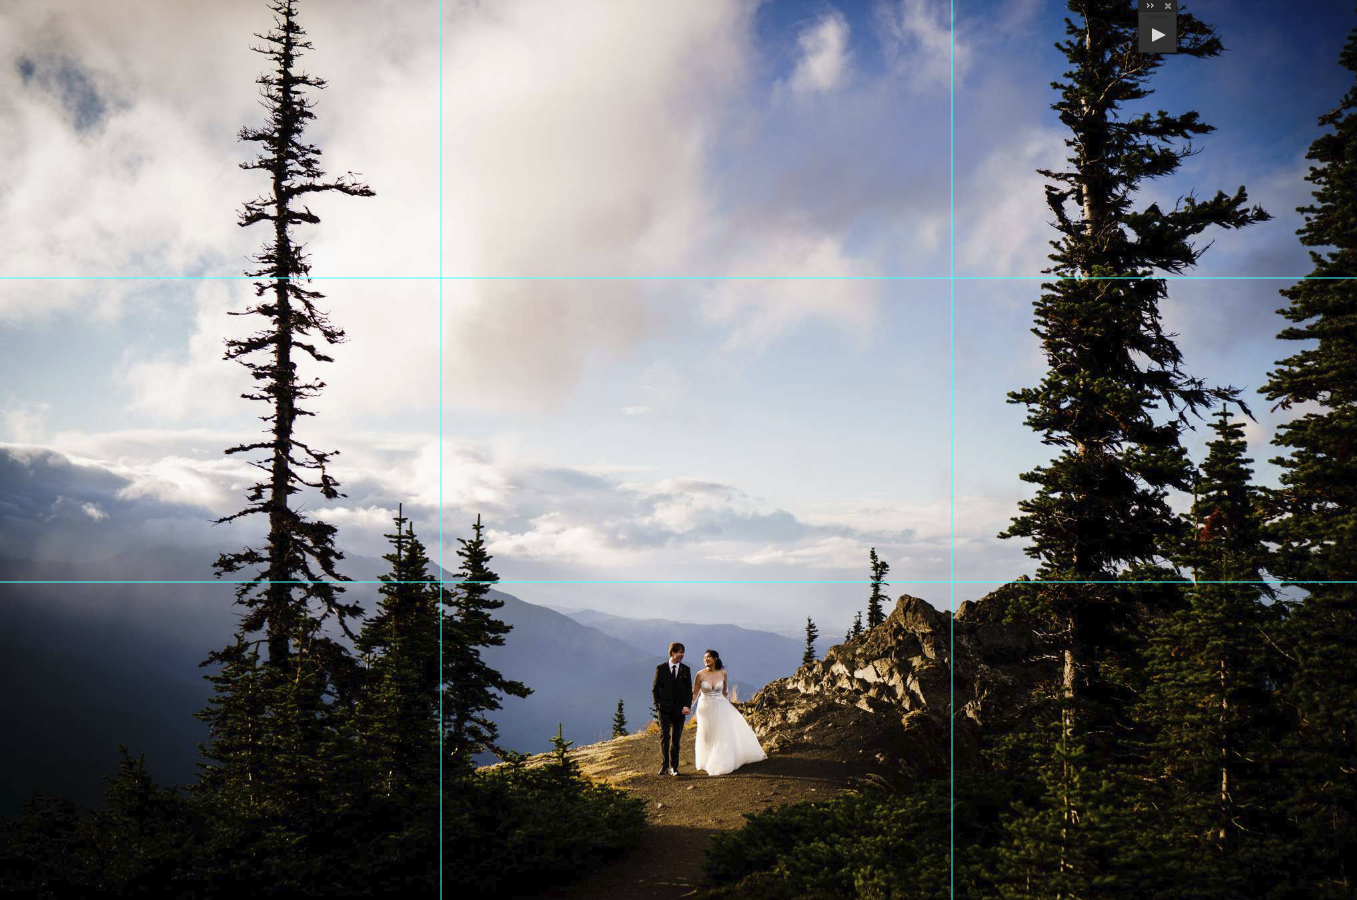 A 3 by 3 camera grid is visible on the image where a bride and groom holds hands with cloud-covered mountain peaks at the background